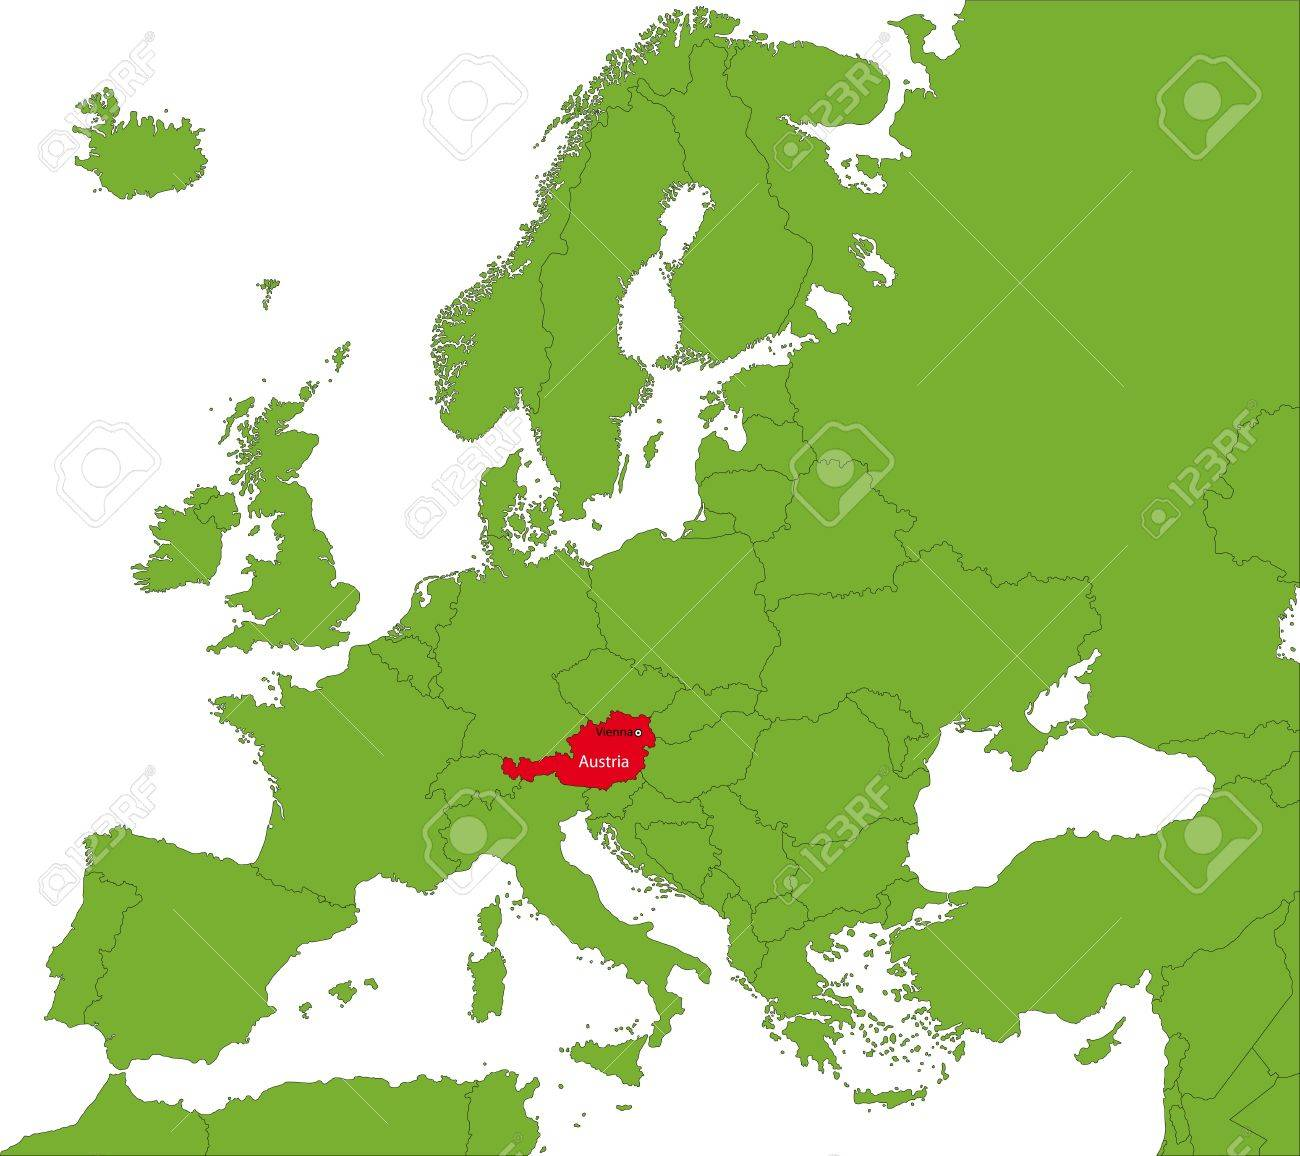 Location Of Austria On The Europa Continent Royalty Free Cliparts - Austria location